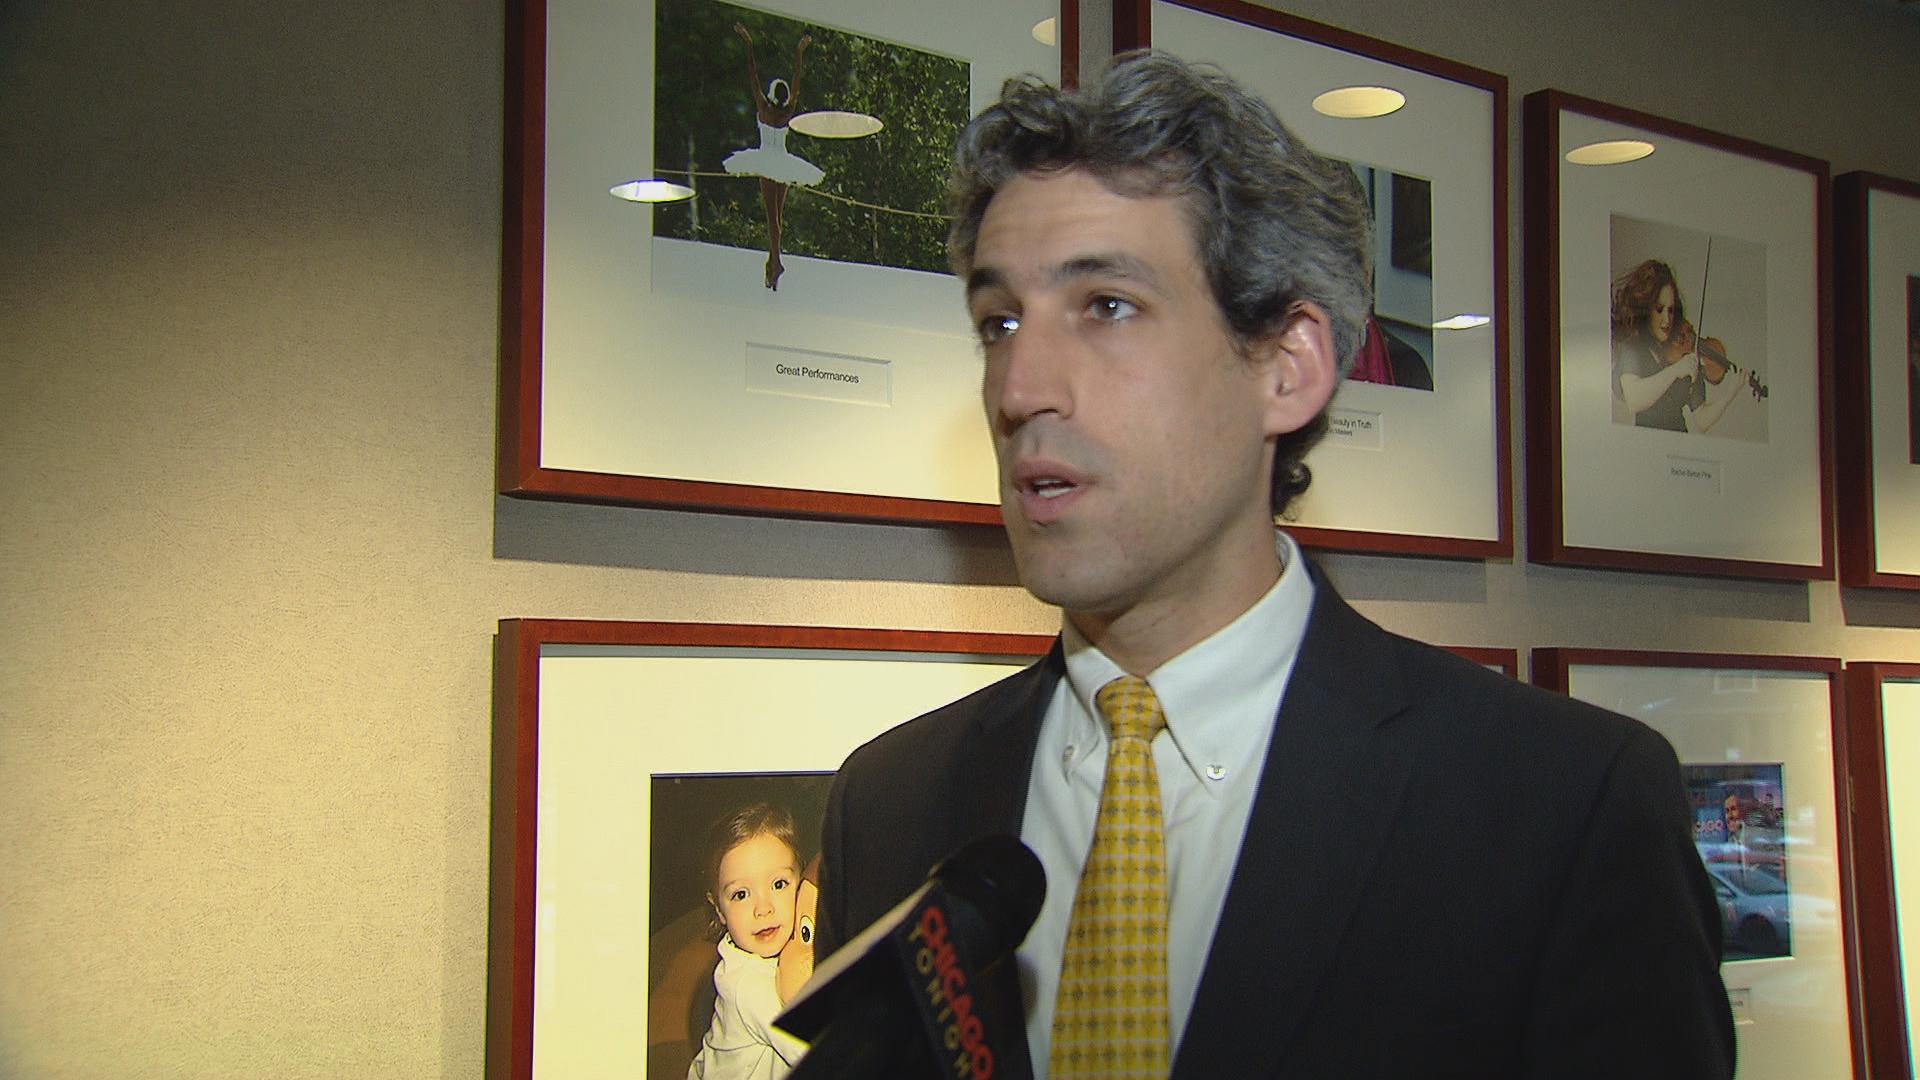 Biss drops Ramirez-Rosa as running mate in bid for IL governor